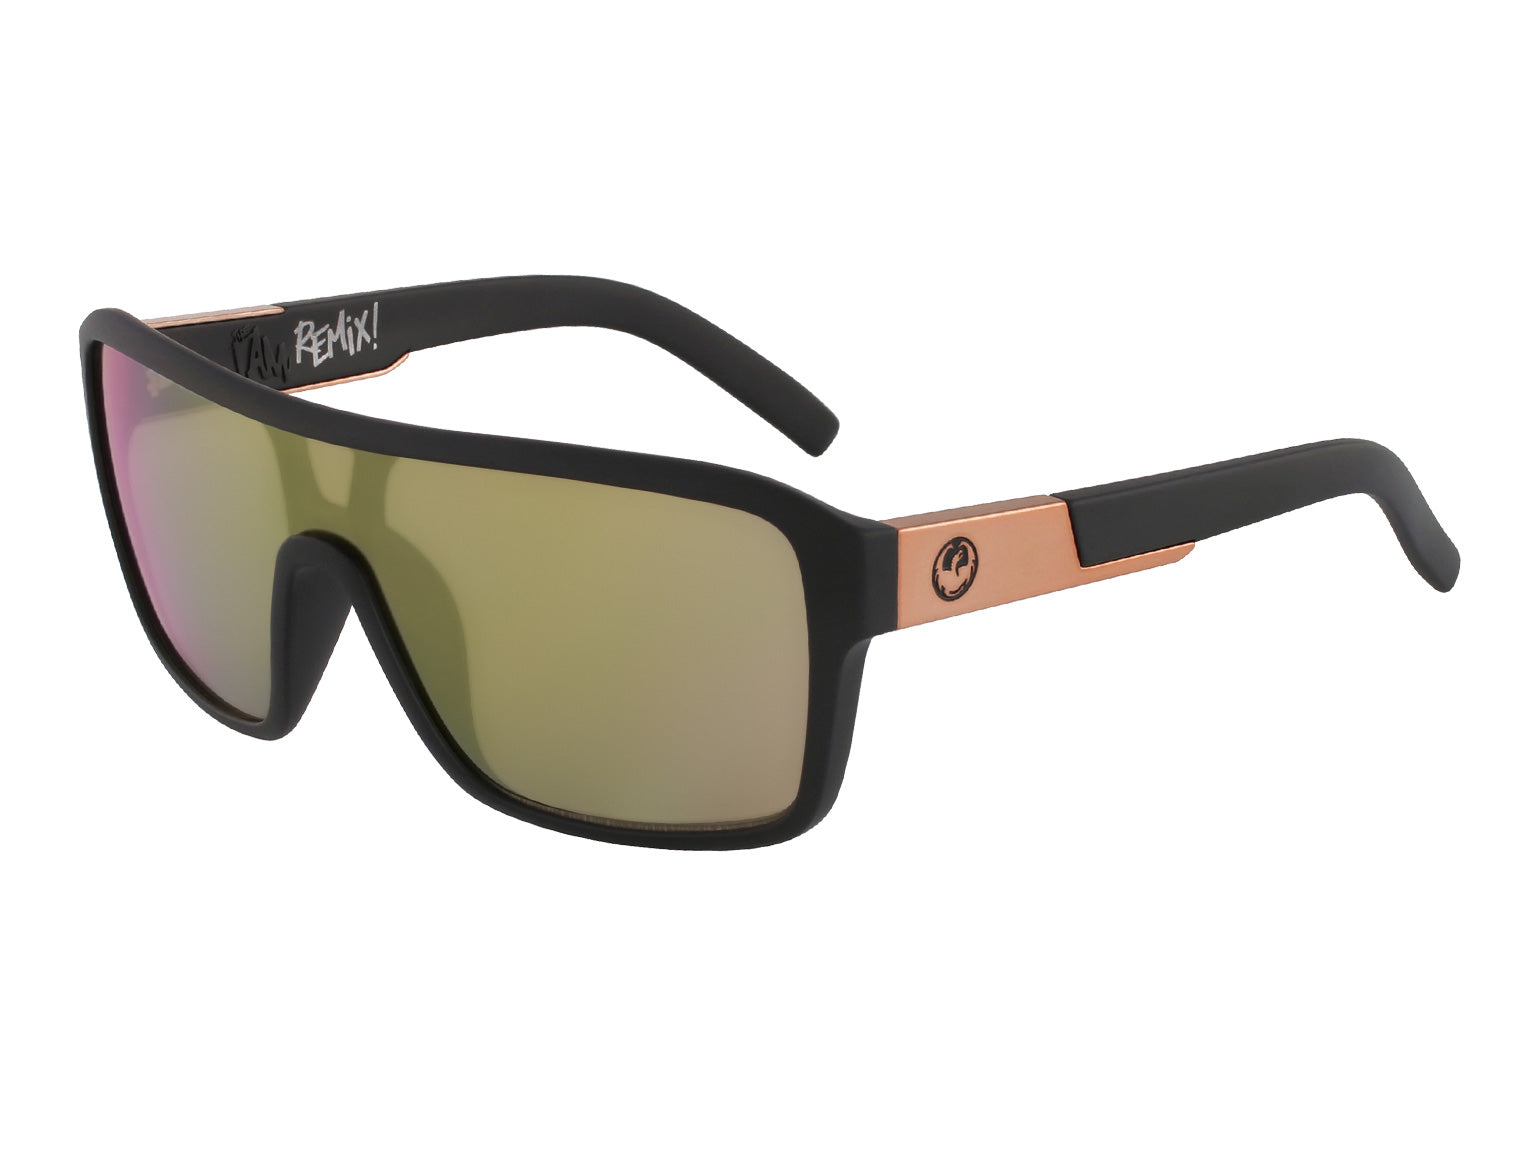 REMIX - Matte Black with Lumalens Rose Gold Ionized Lens